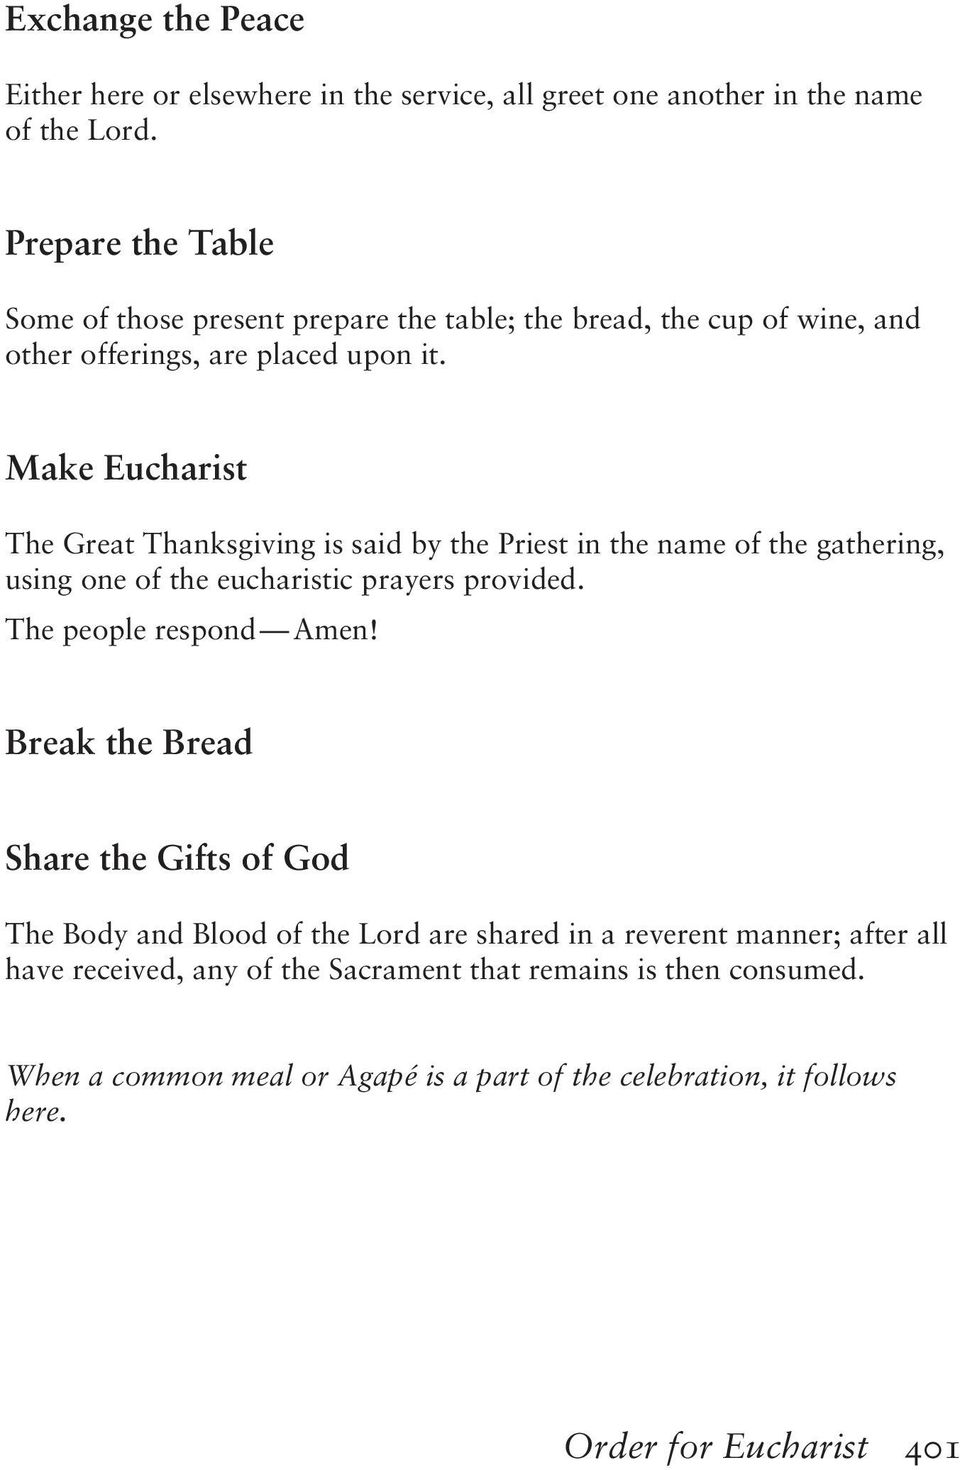 Make Eucharist The Great Thanksgiving is said by the Priest in the name of the gathering, using one of the eucharistic prayers provided. The people respond Amen!